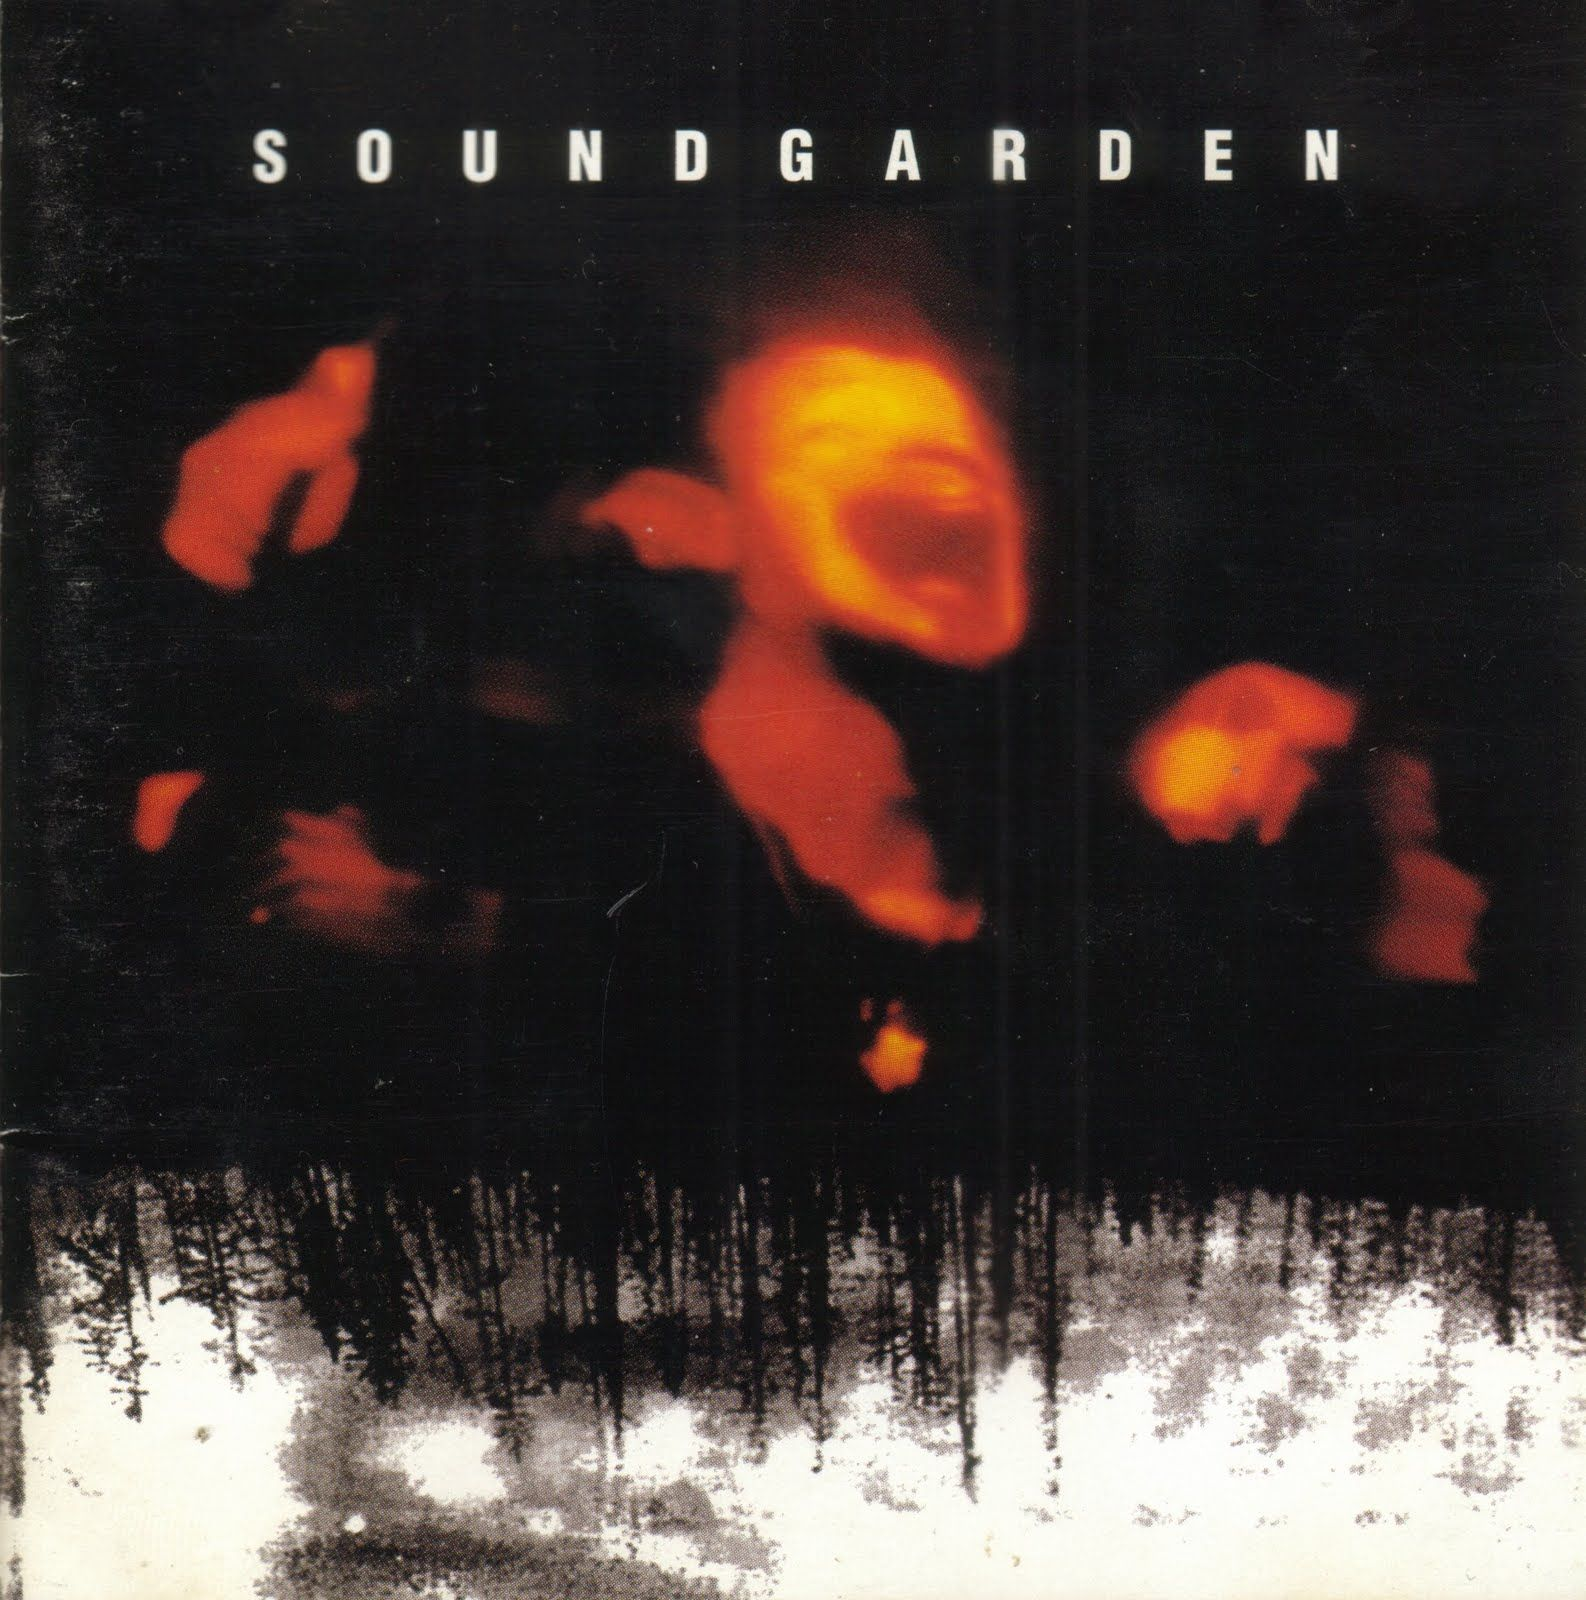 Gallery images and information soundgarden badmotorfinger tattoo - Find This Pin And More On Music Soundgarden